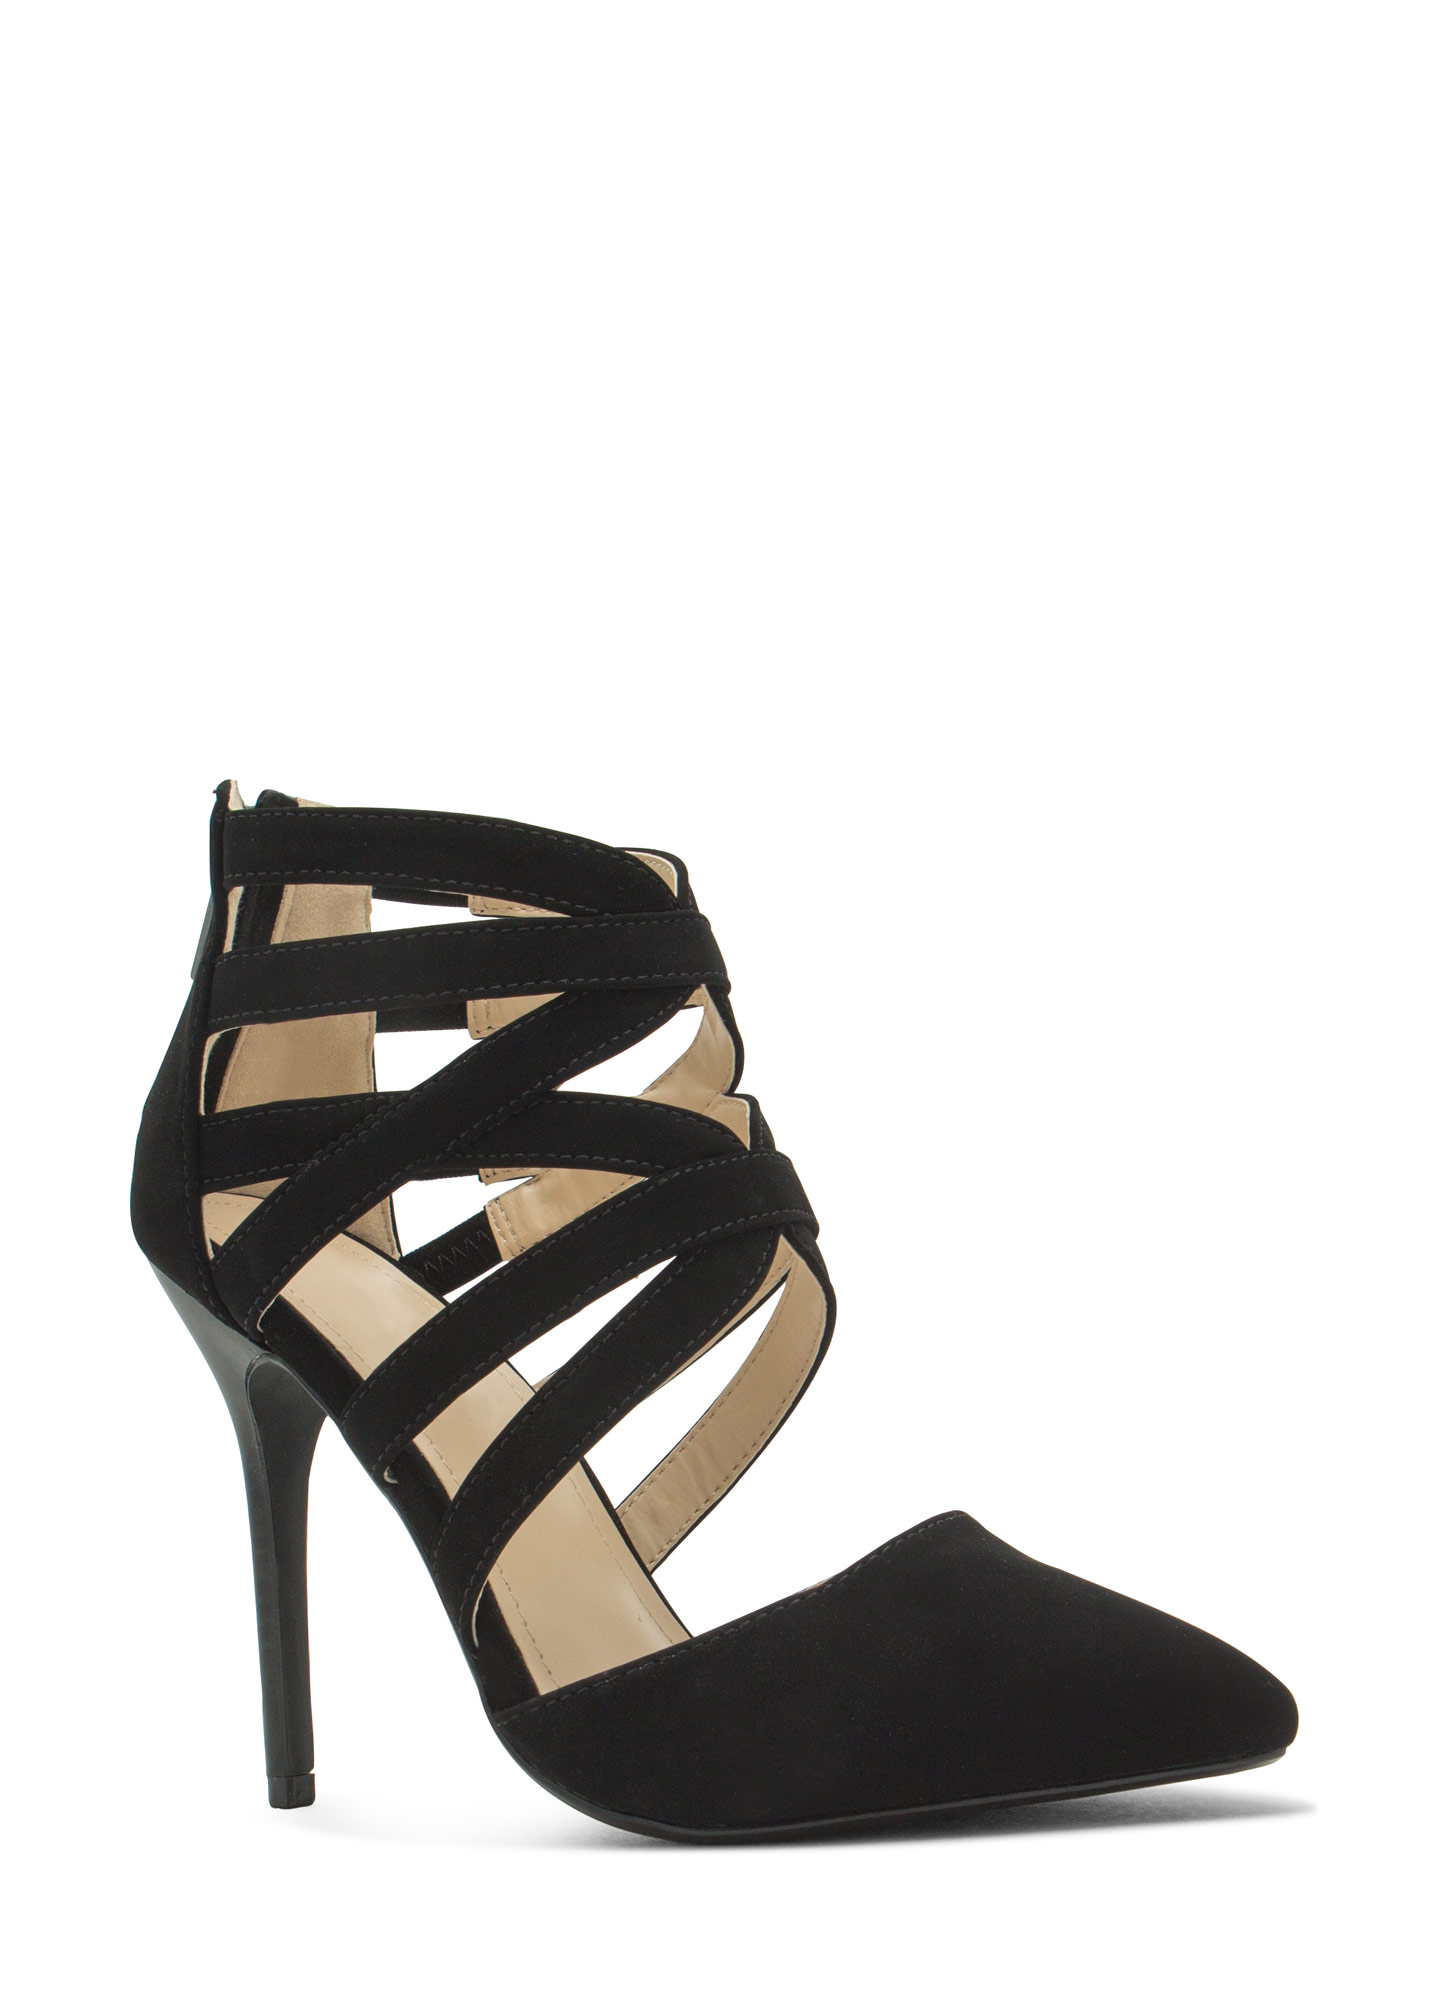 Caged Take Pointy Toe Heels BLACK